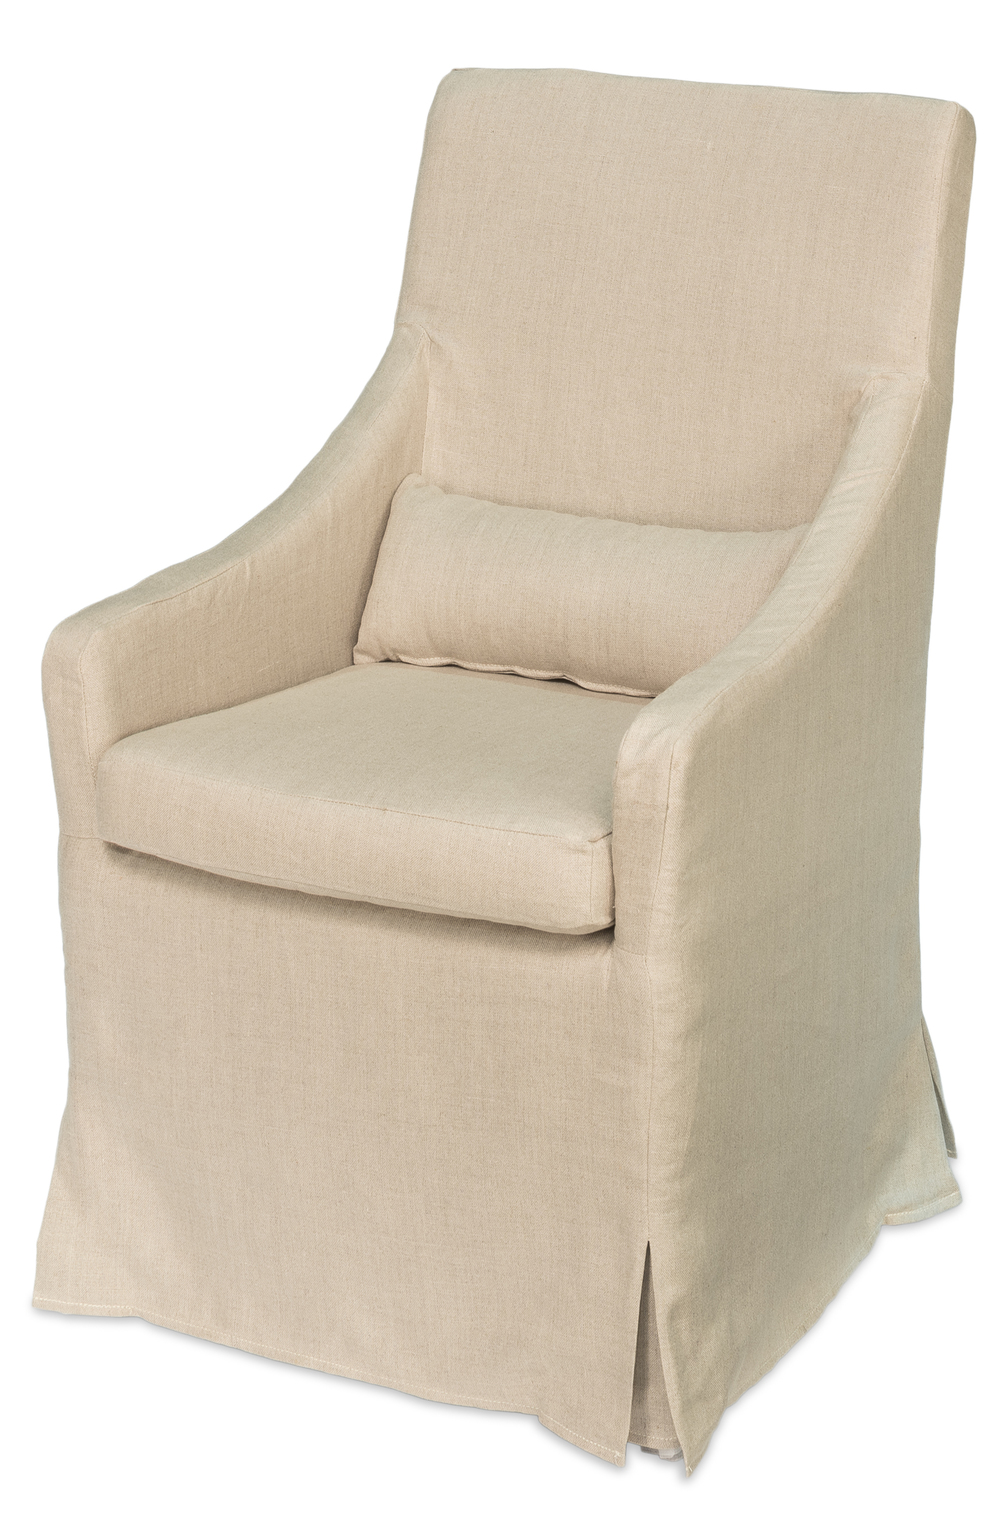 Sarreid - Skirted Arm Chair